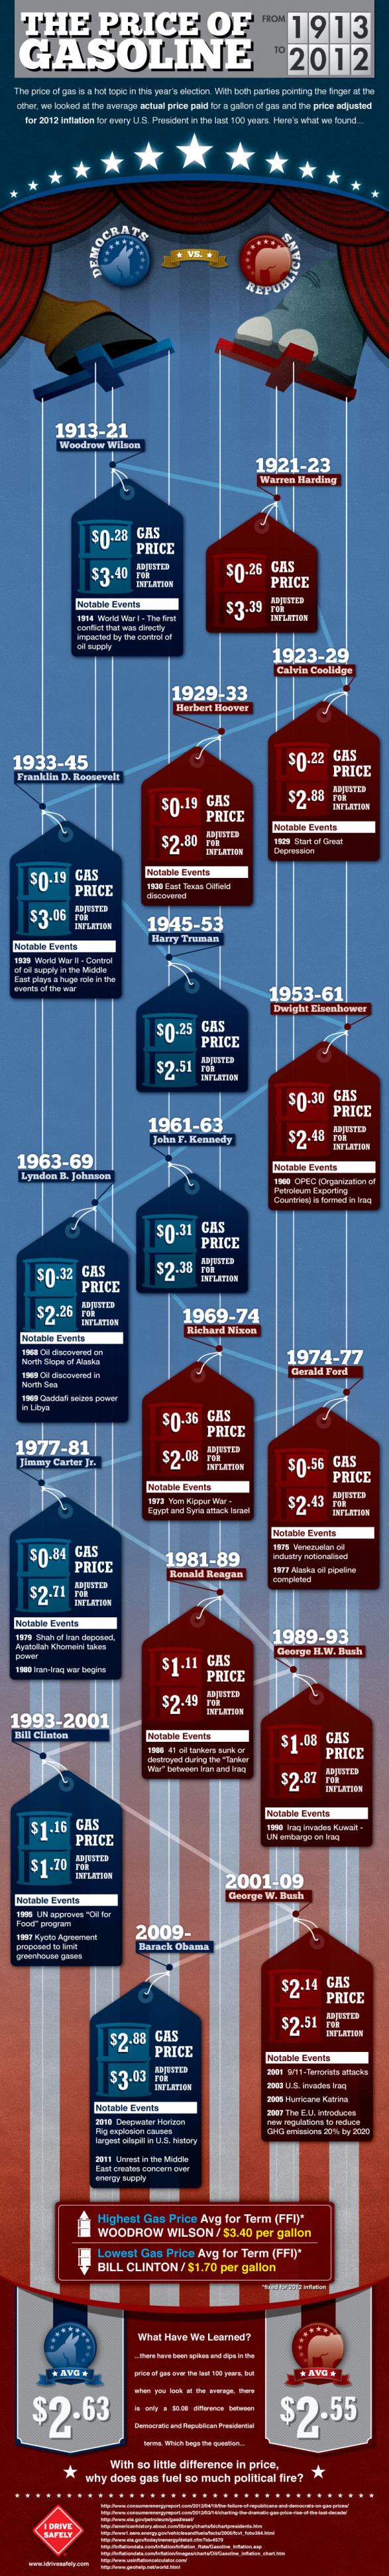 Democrats vs. Republicans: Gas Prices of the last 100 years